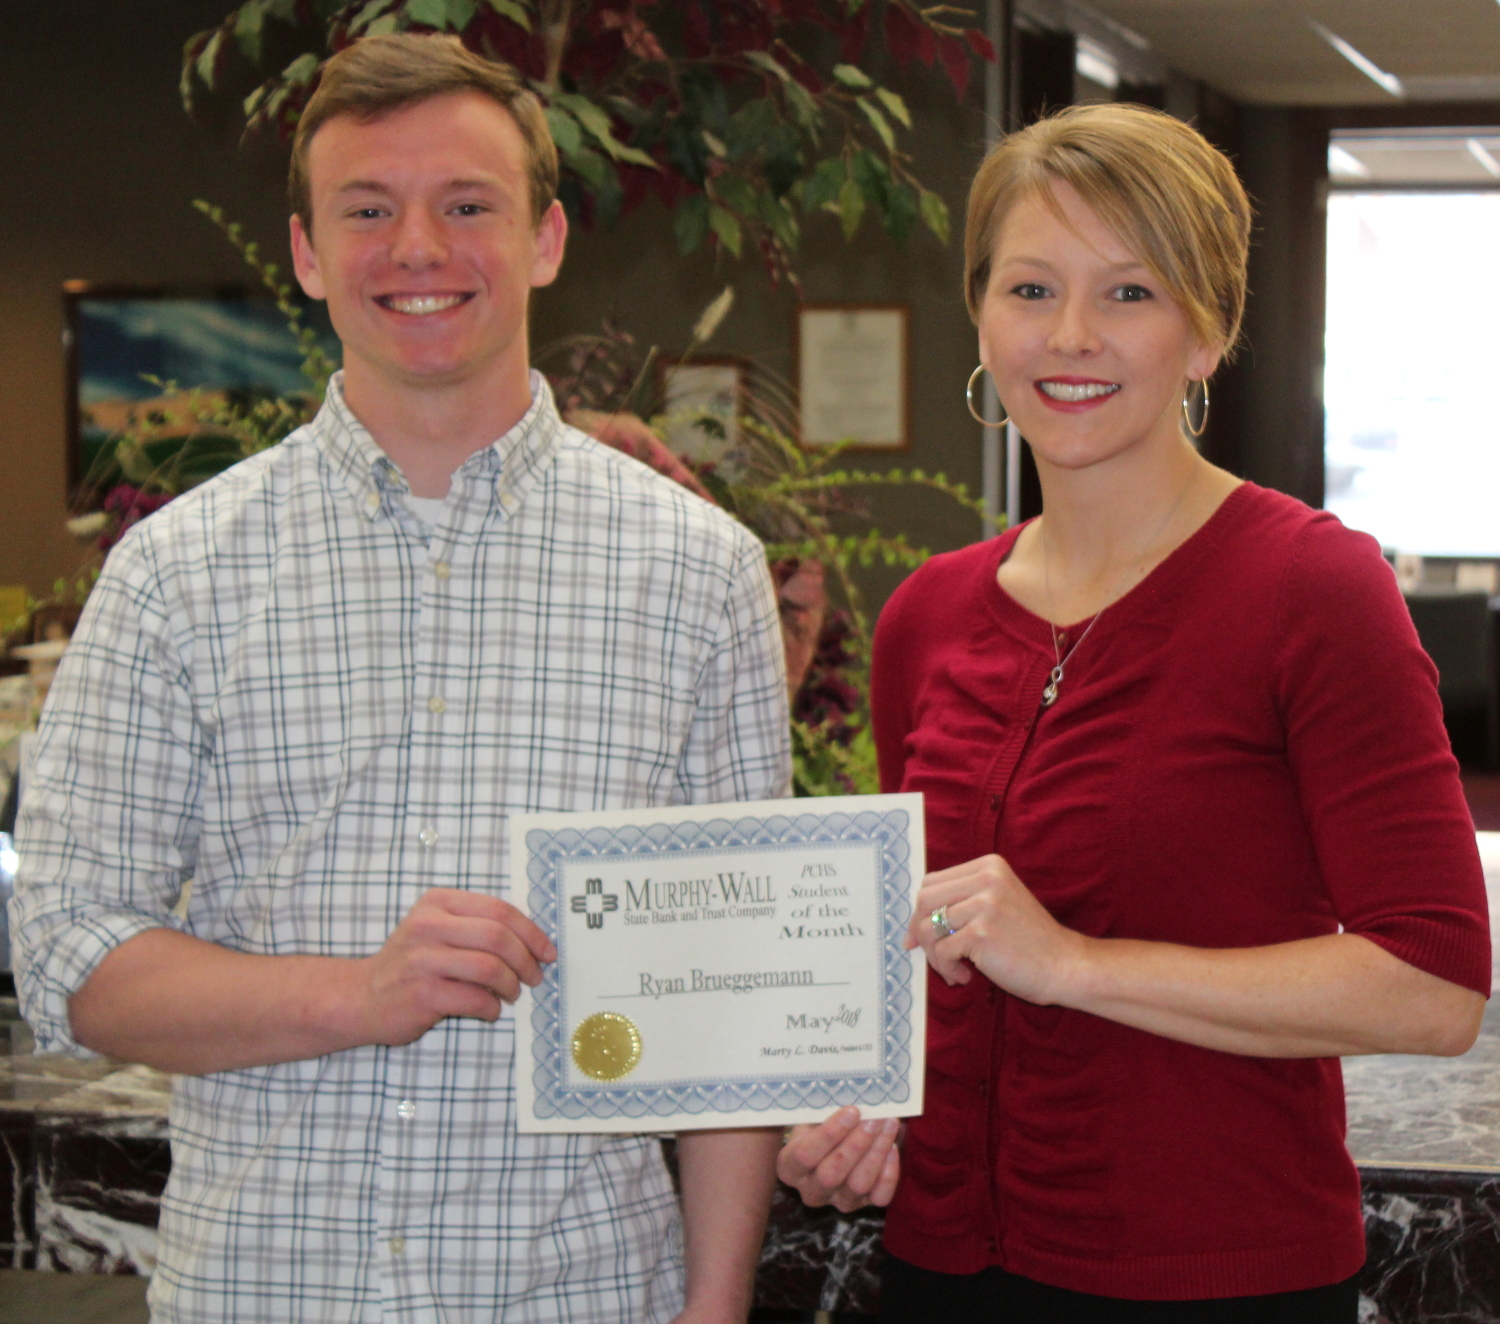 Murphy-Wall State Bank and Trust Company employee Sarah Folden gives PCHS student Ryan Brueggemann the Student of the Month award for May 2018